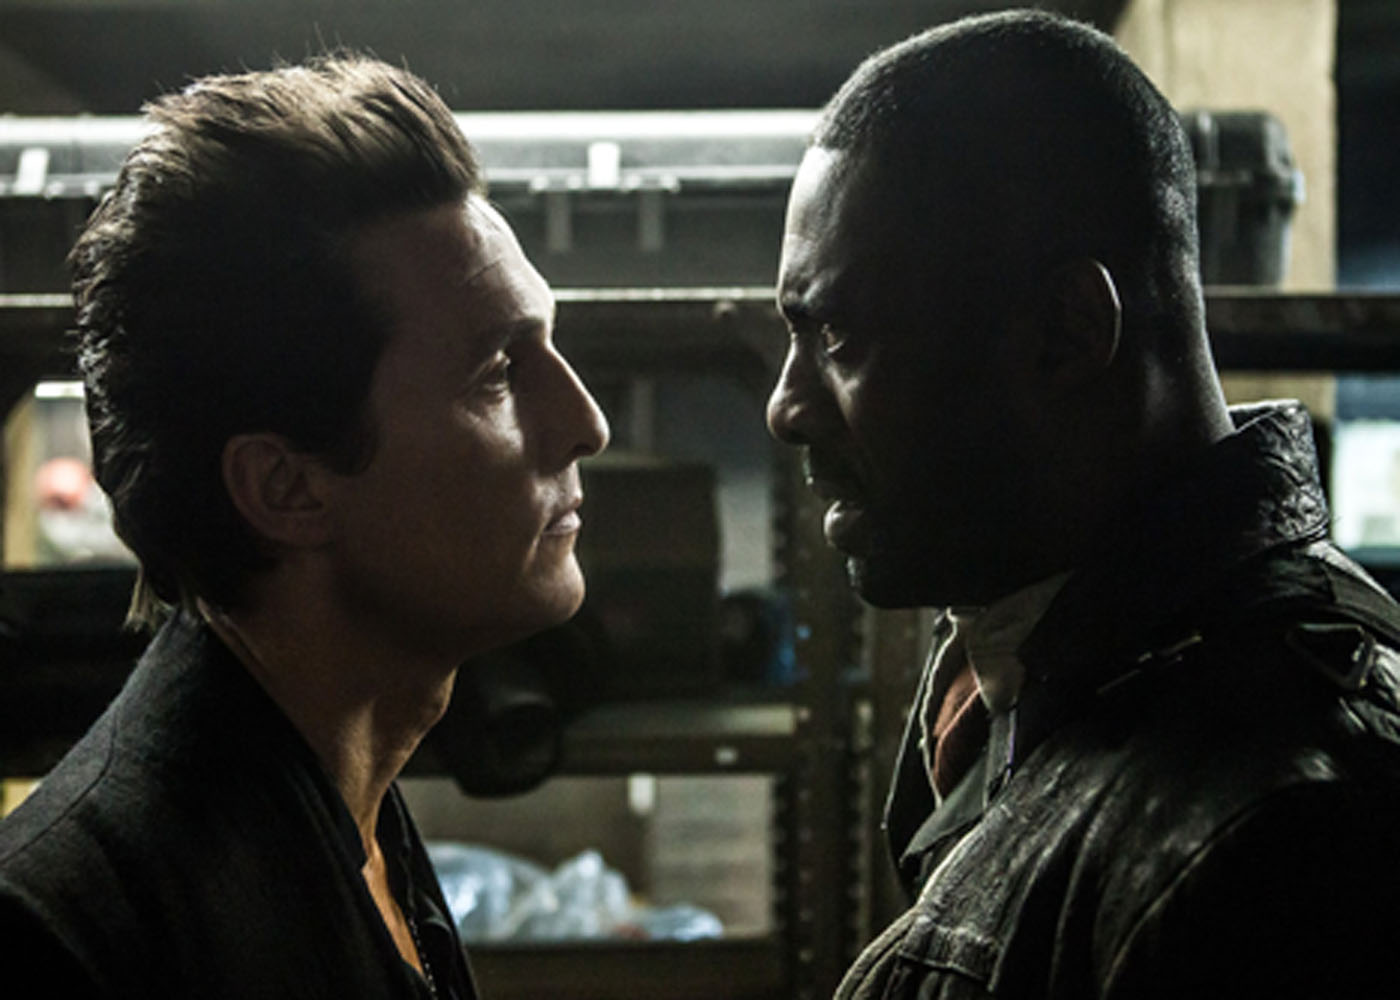 New Dark Tower TV Spots Highlight Conflict Between Roland and The Man in Black